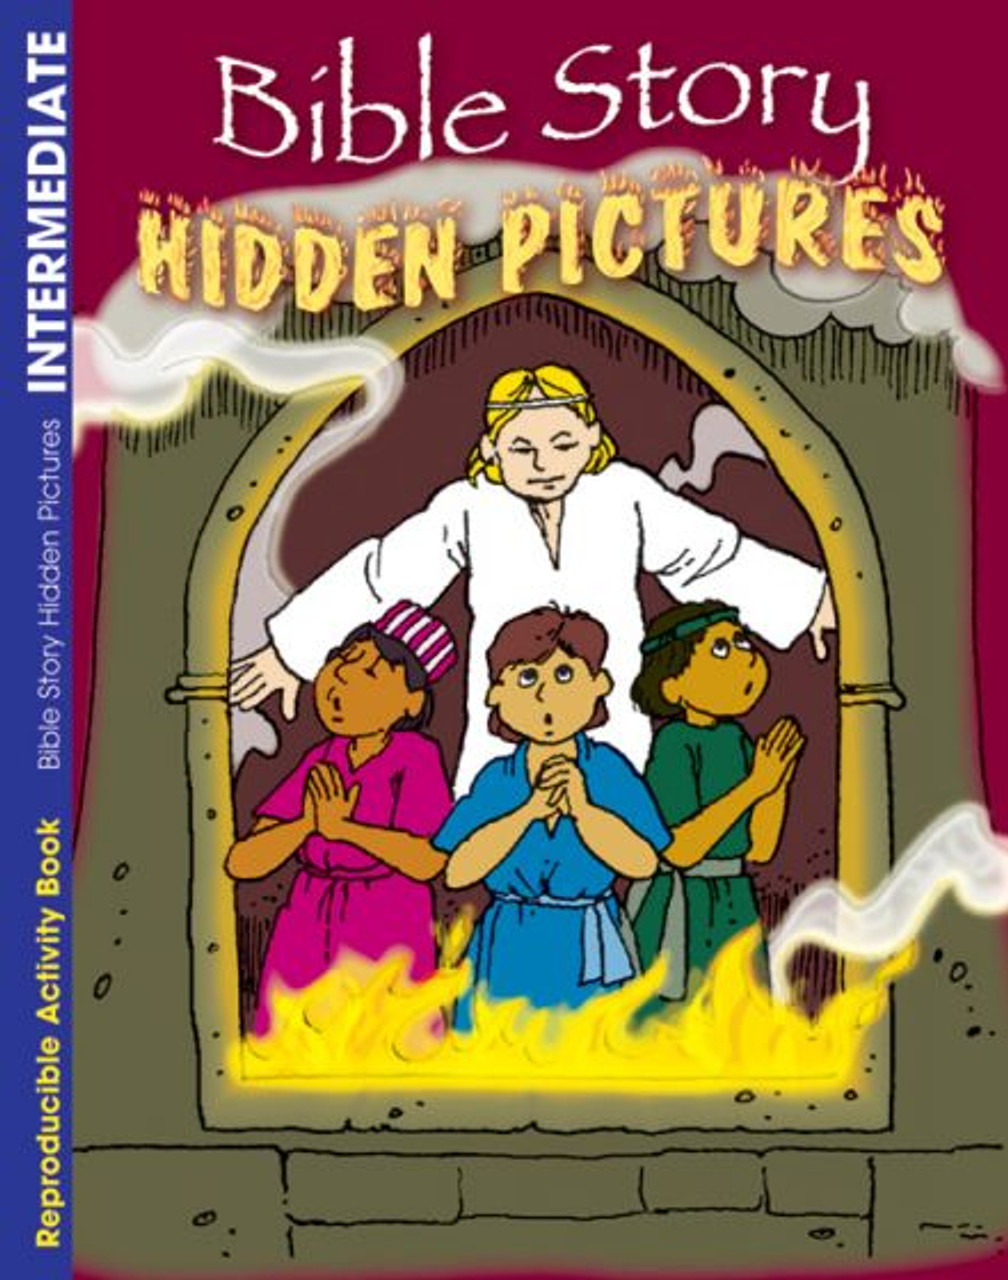 Bible Story Hidden Pictures (activity book)